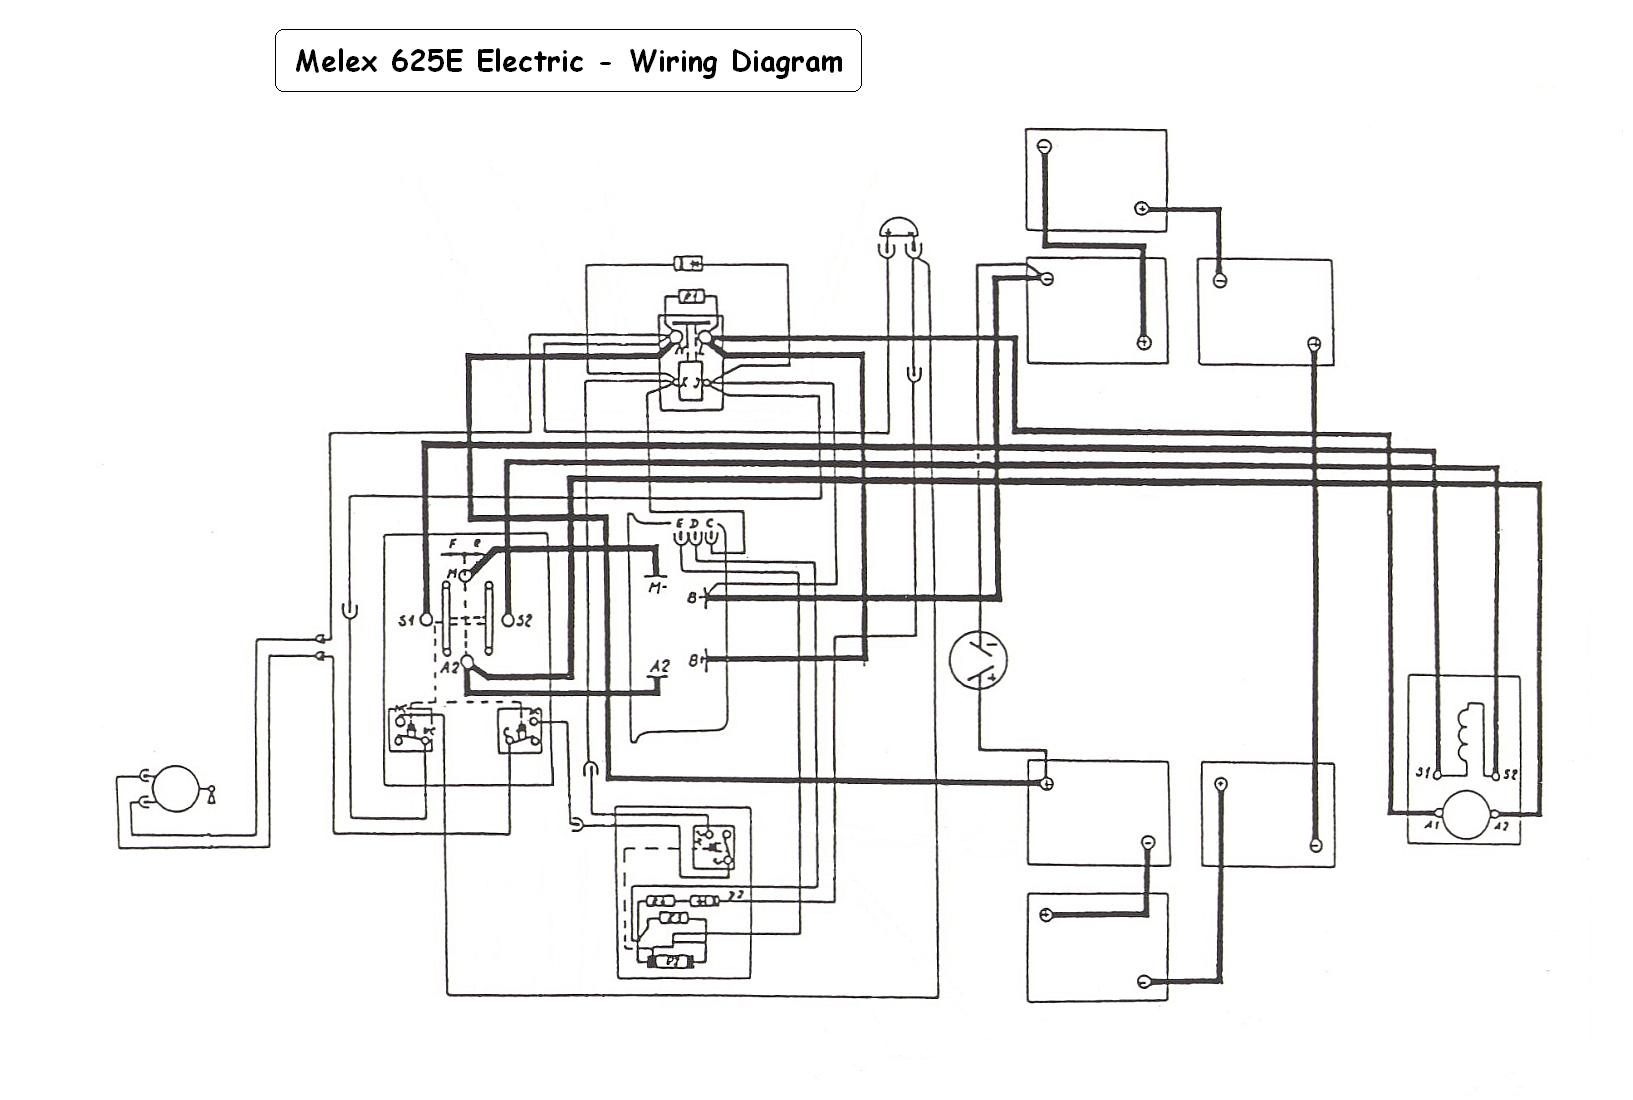 Wiring Diagram For Melex Model 252